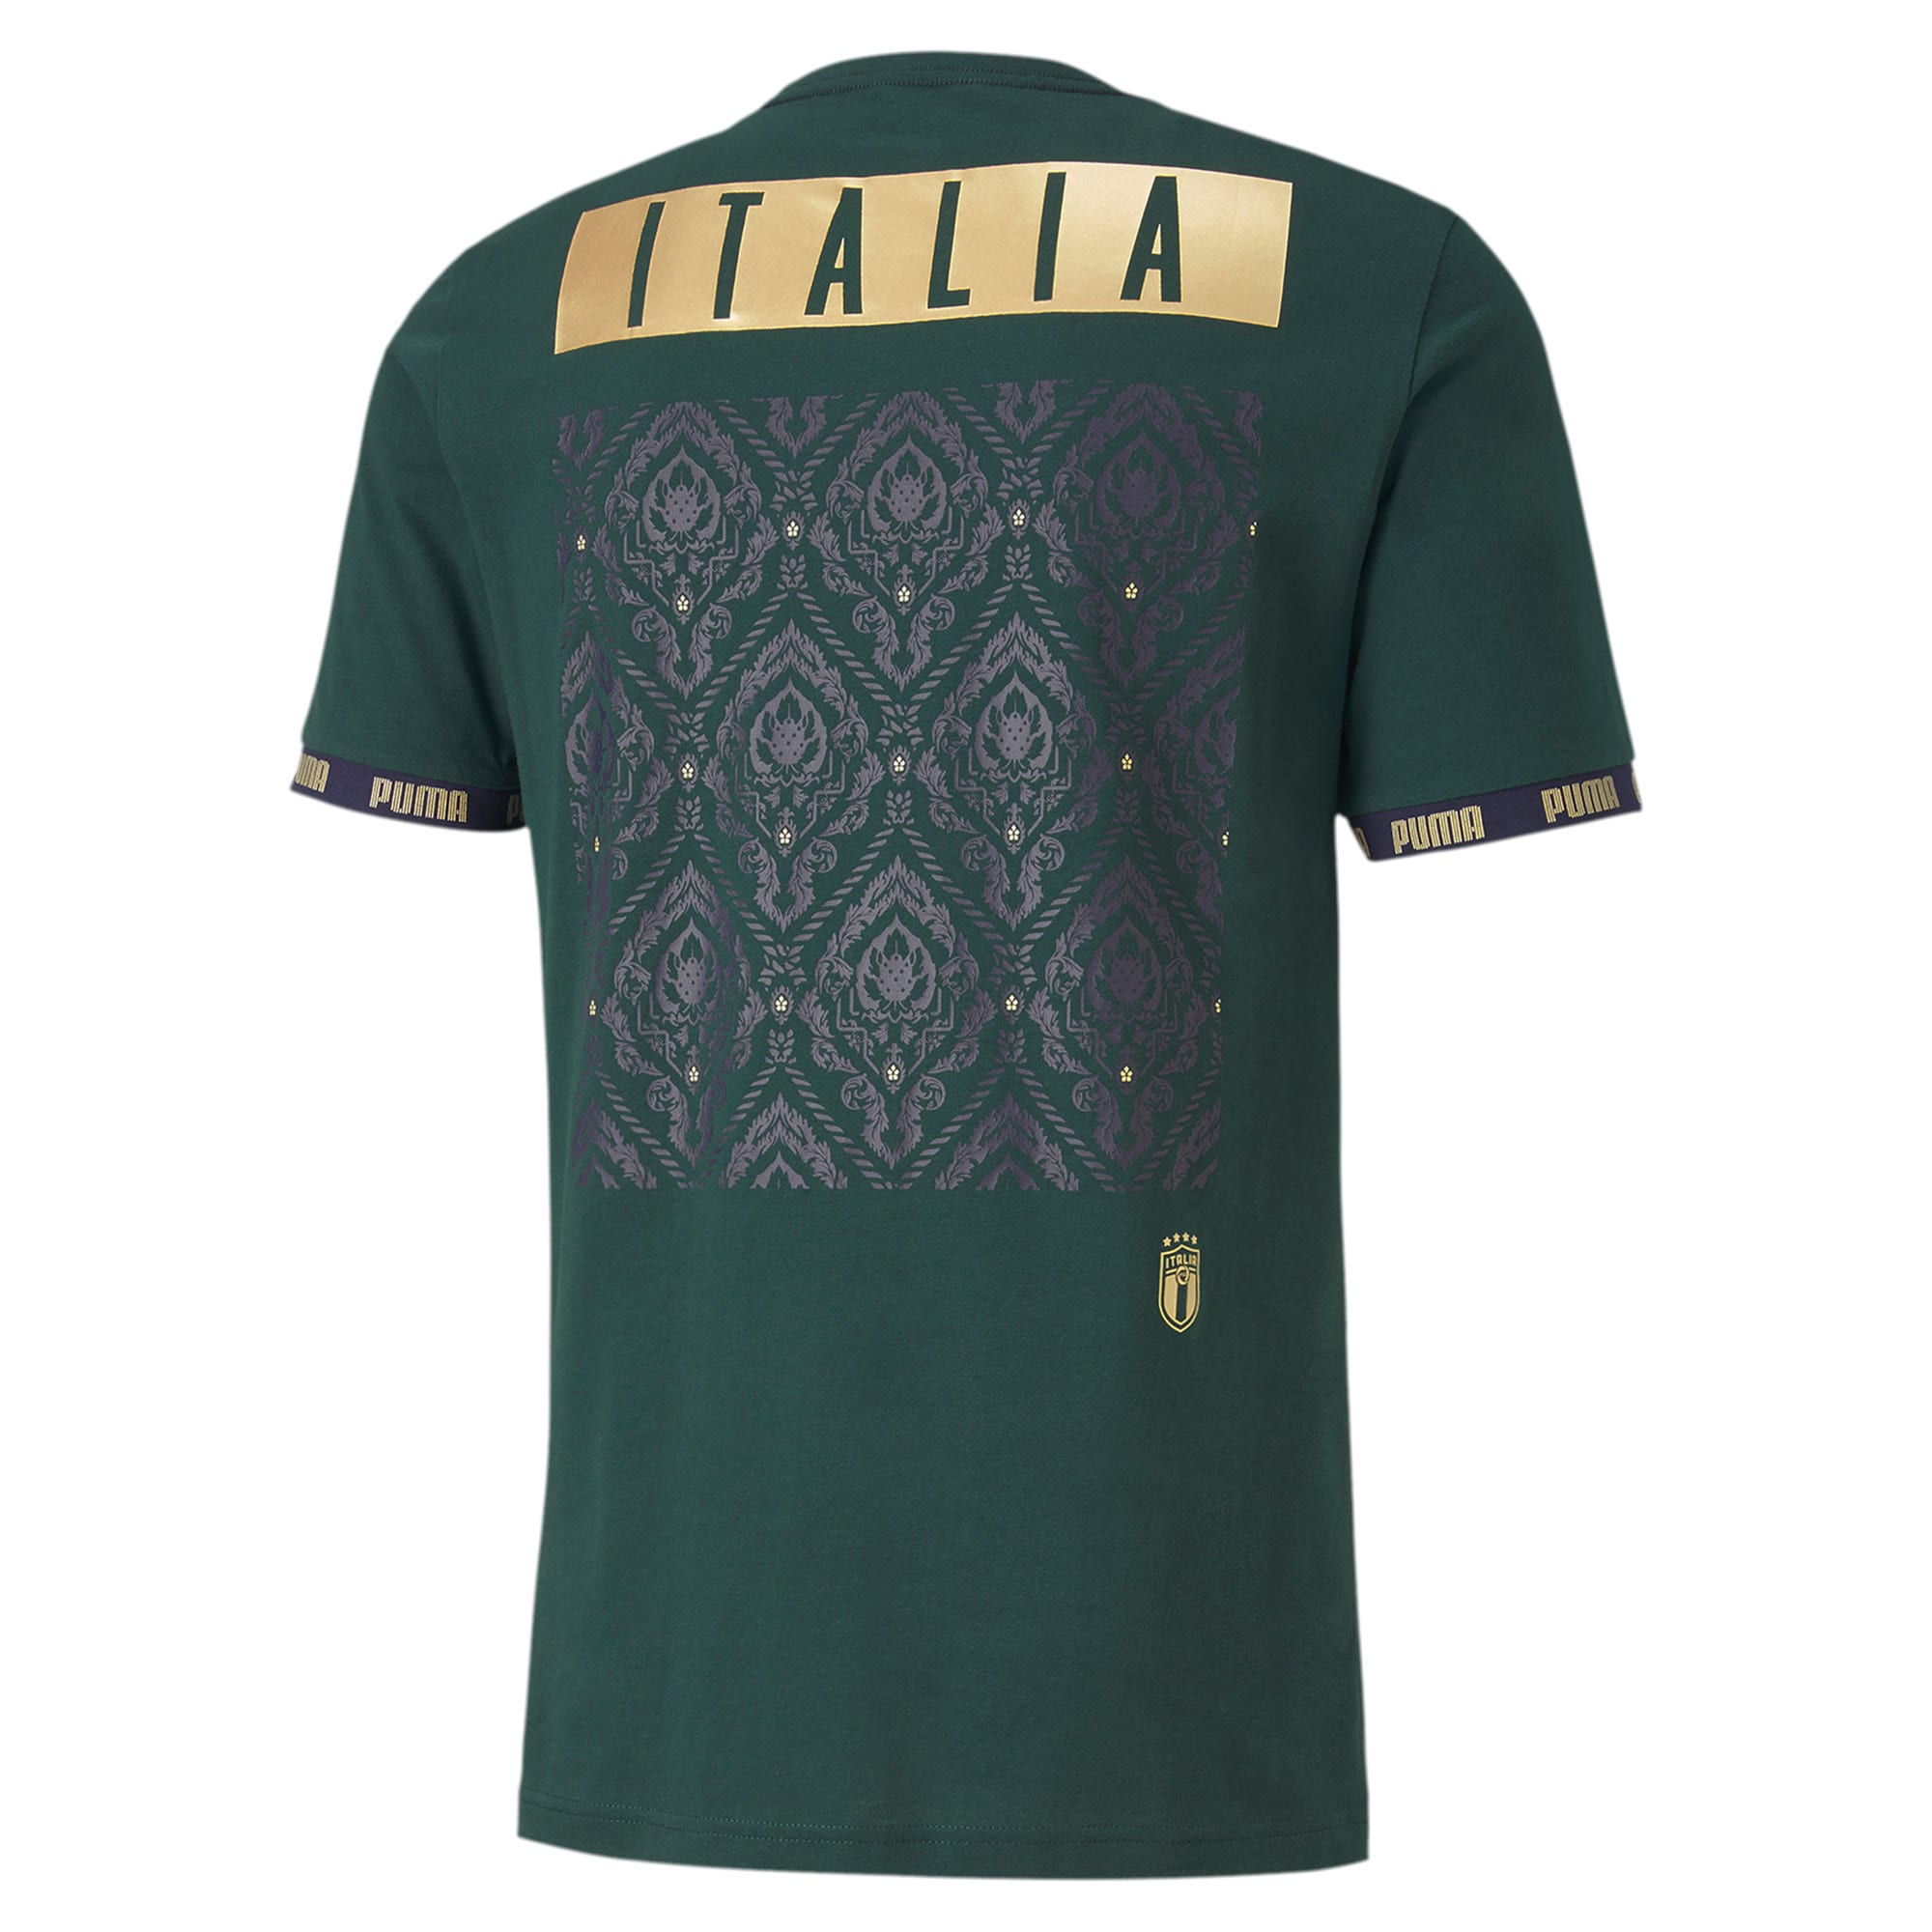 Thumbnail 2 of Italia FtblCulture Men's Tee, Ponderosa Pine, medium